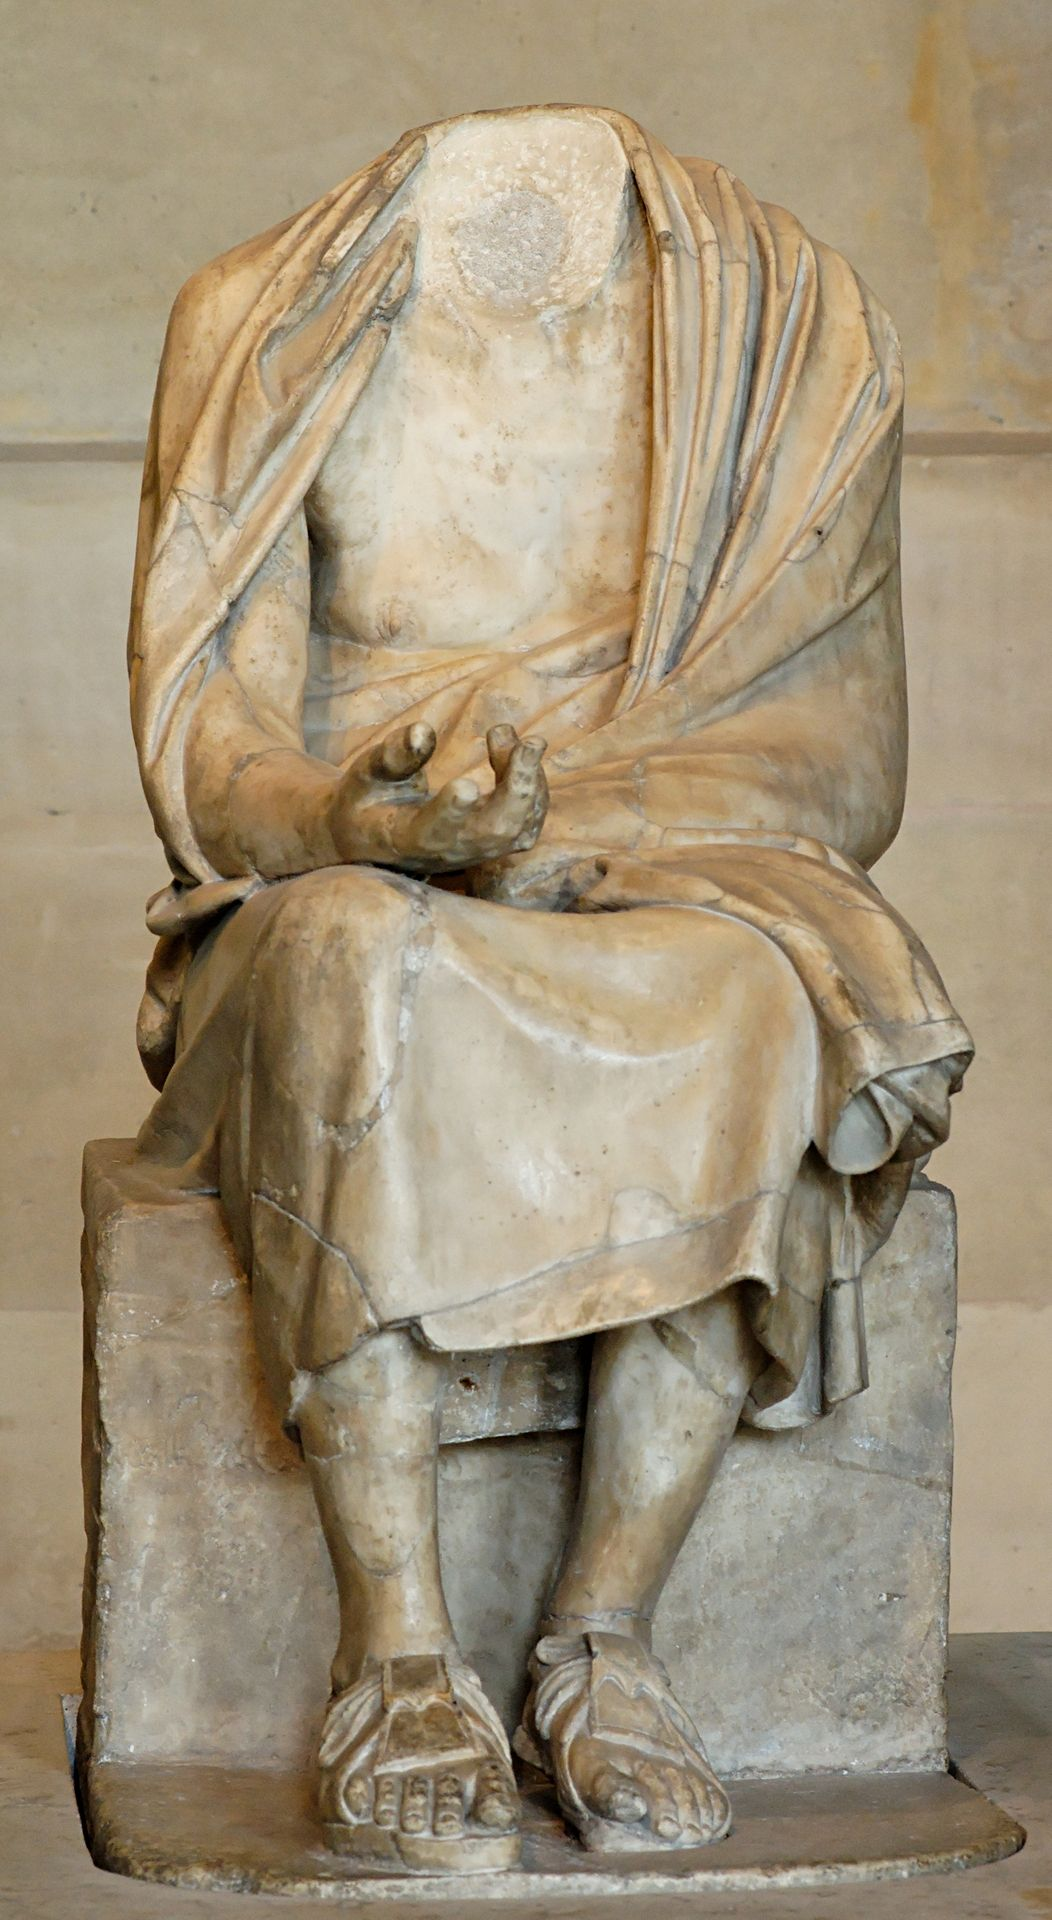 Seated old man. Marble, Roman copy of the 2nd century CE after a Hellenistic original, maybe the 3rd-century BC statue of Chrysippus by Euboulides described by Pliny (34.88). Courtesy & currently located at the Louvre, France.